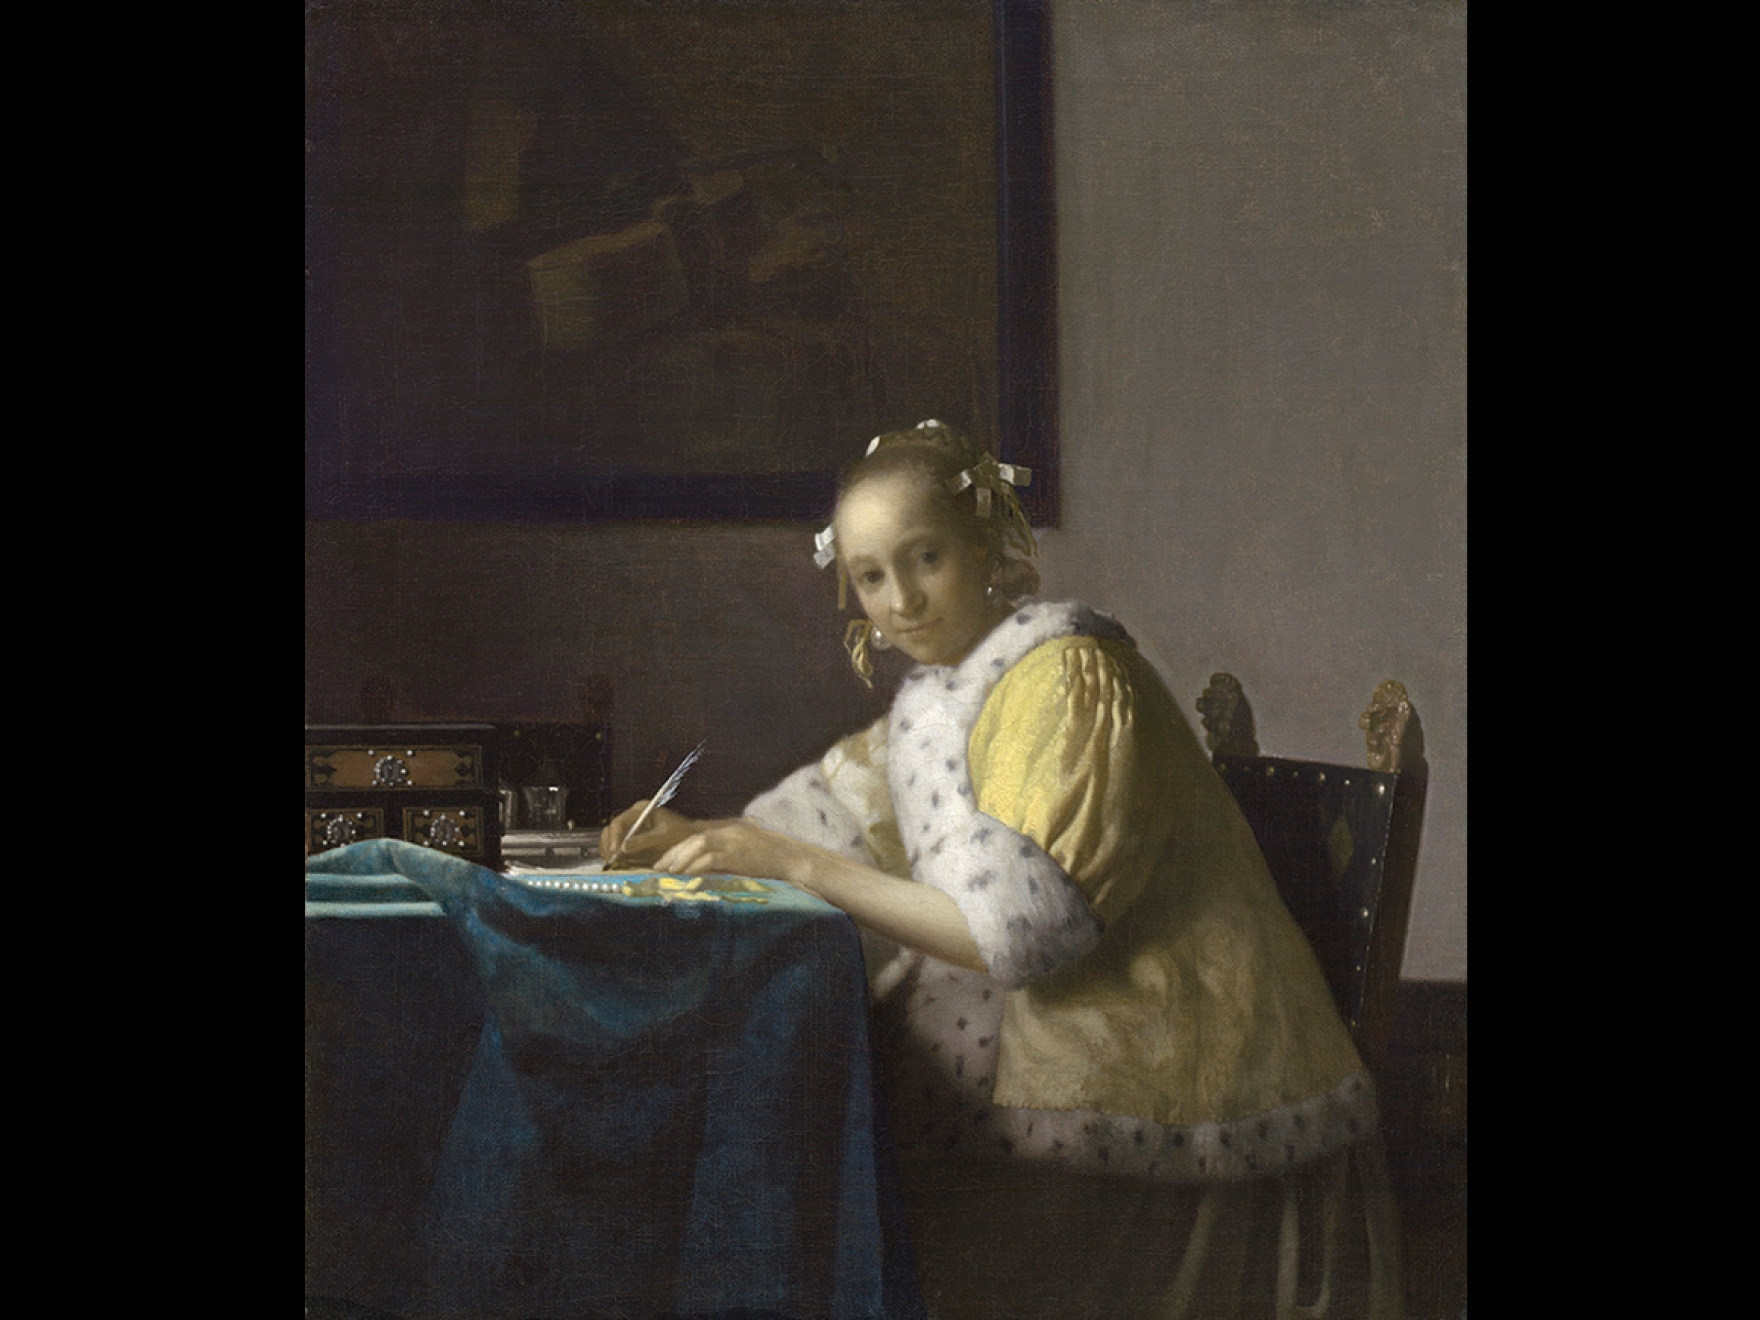 A Lady Writing by Johannes Vermeer, from about 1665